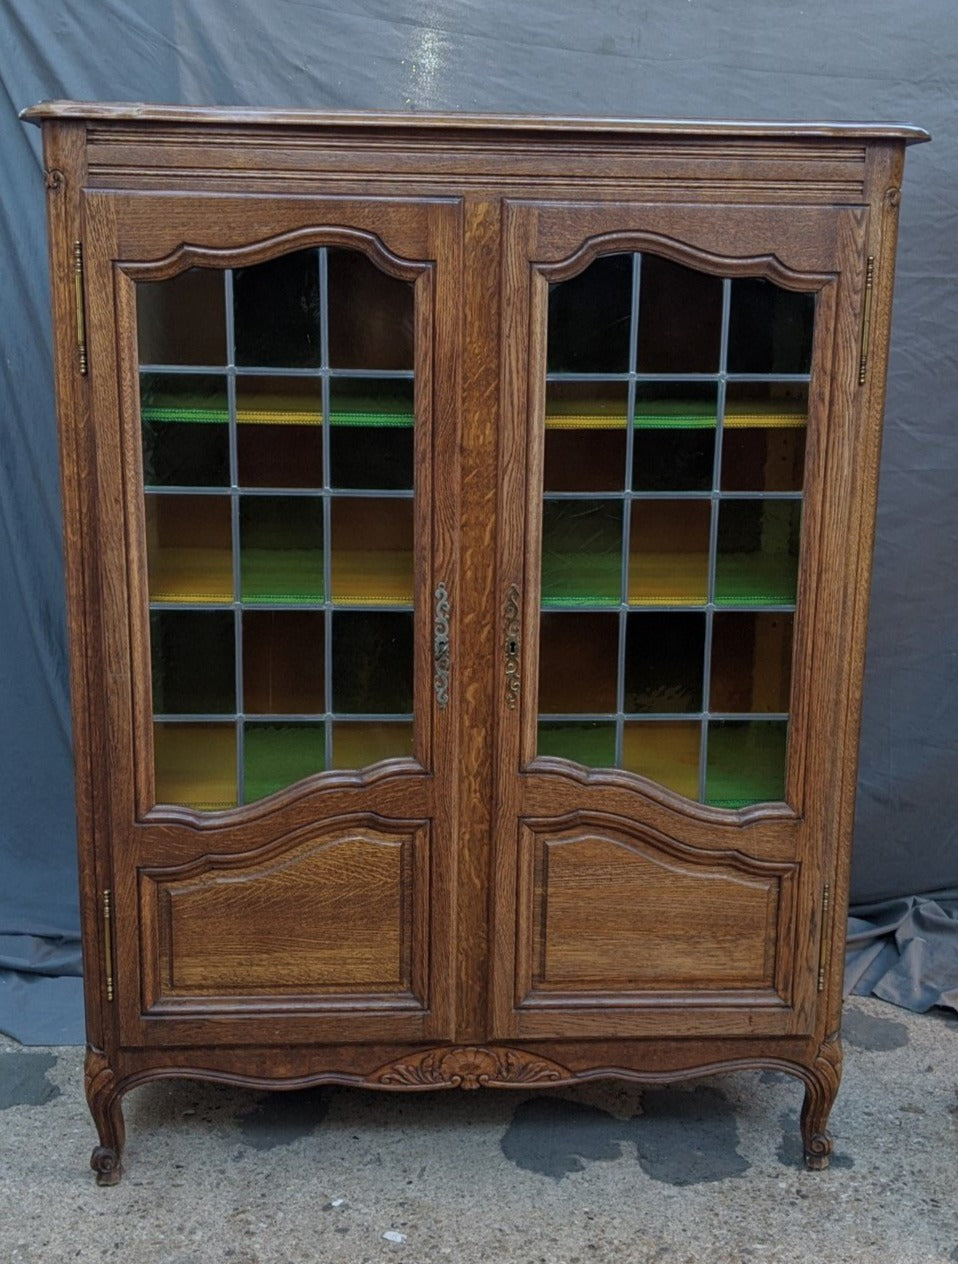 LOUIS XV OAK DISPLAY CABINET WITH STAINED GLASS